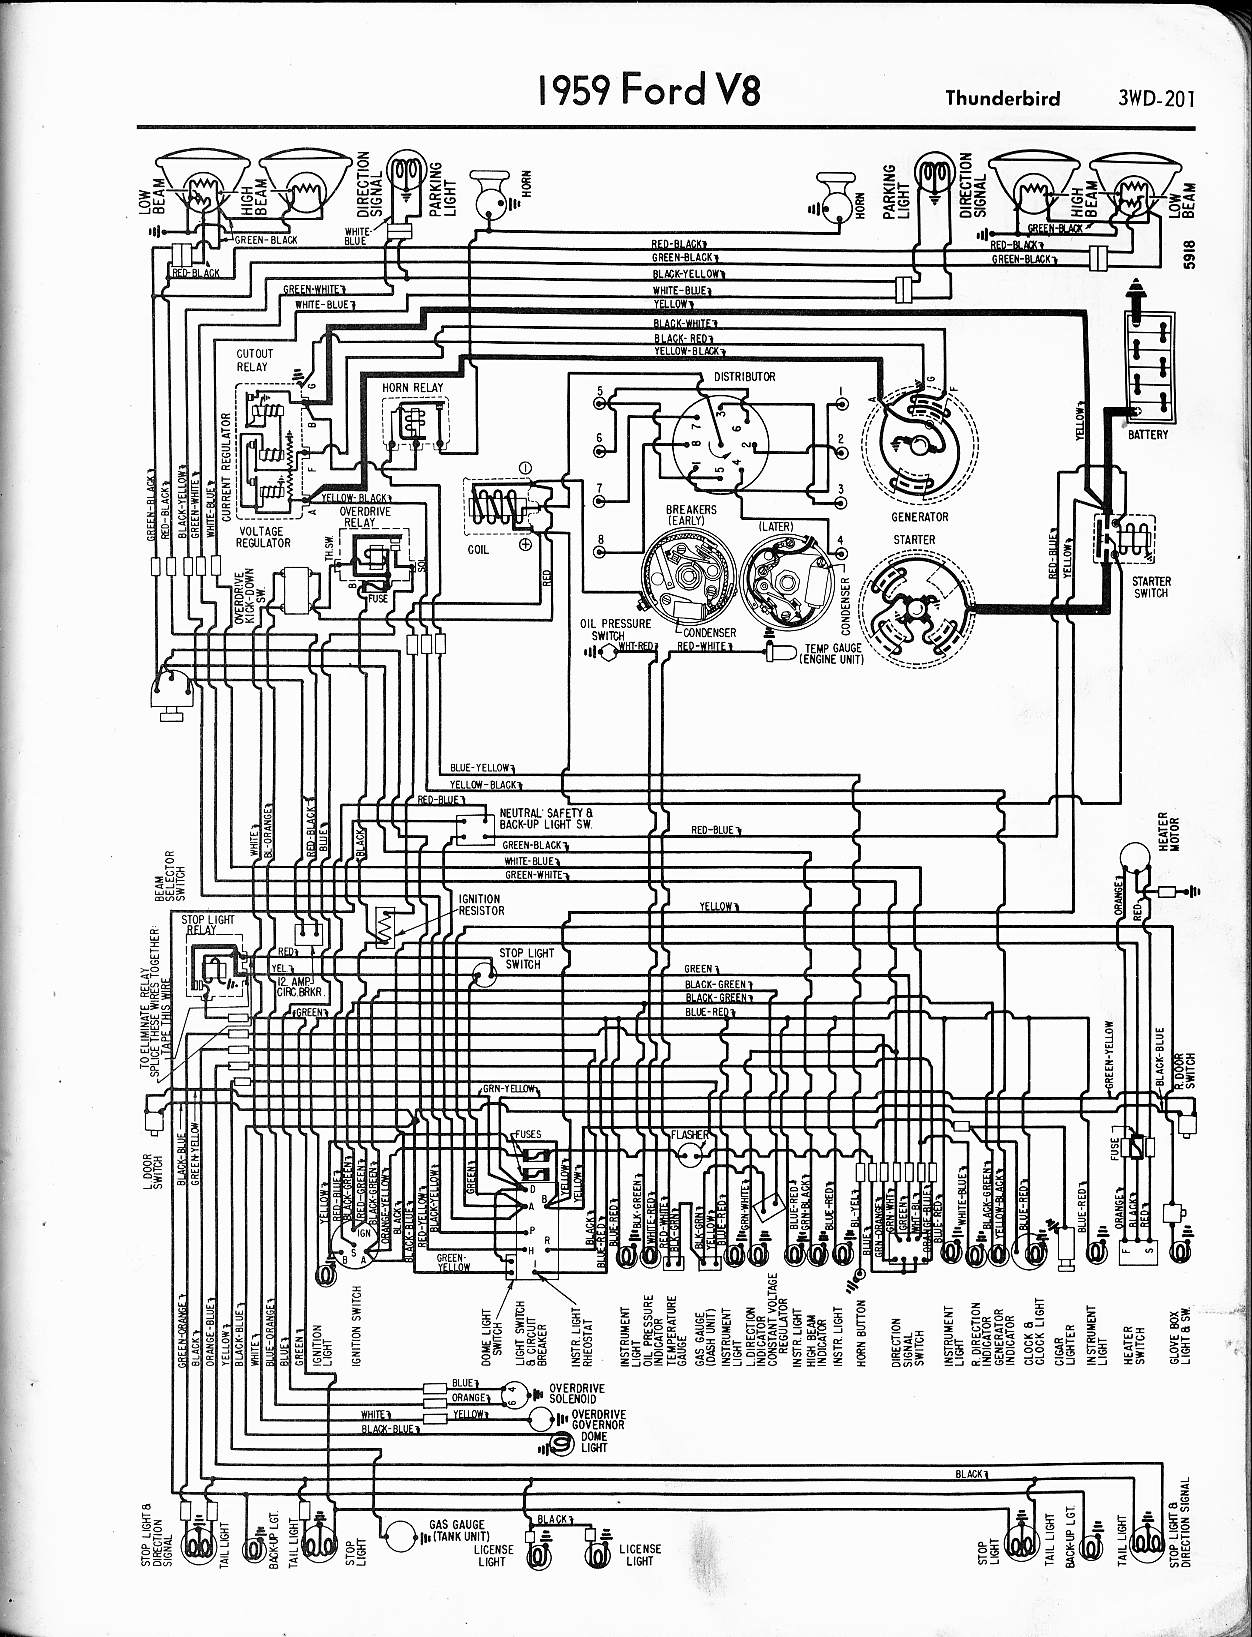 MWire5765 201 57 65 ford wiring diagrams 1965 ford thunderbird wiring harness at edmiracle.co